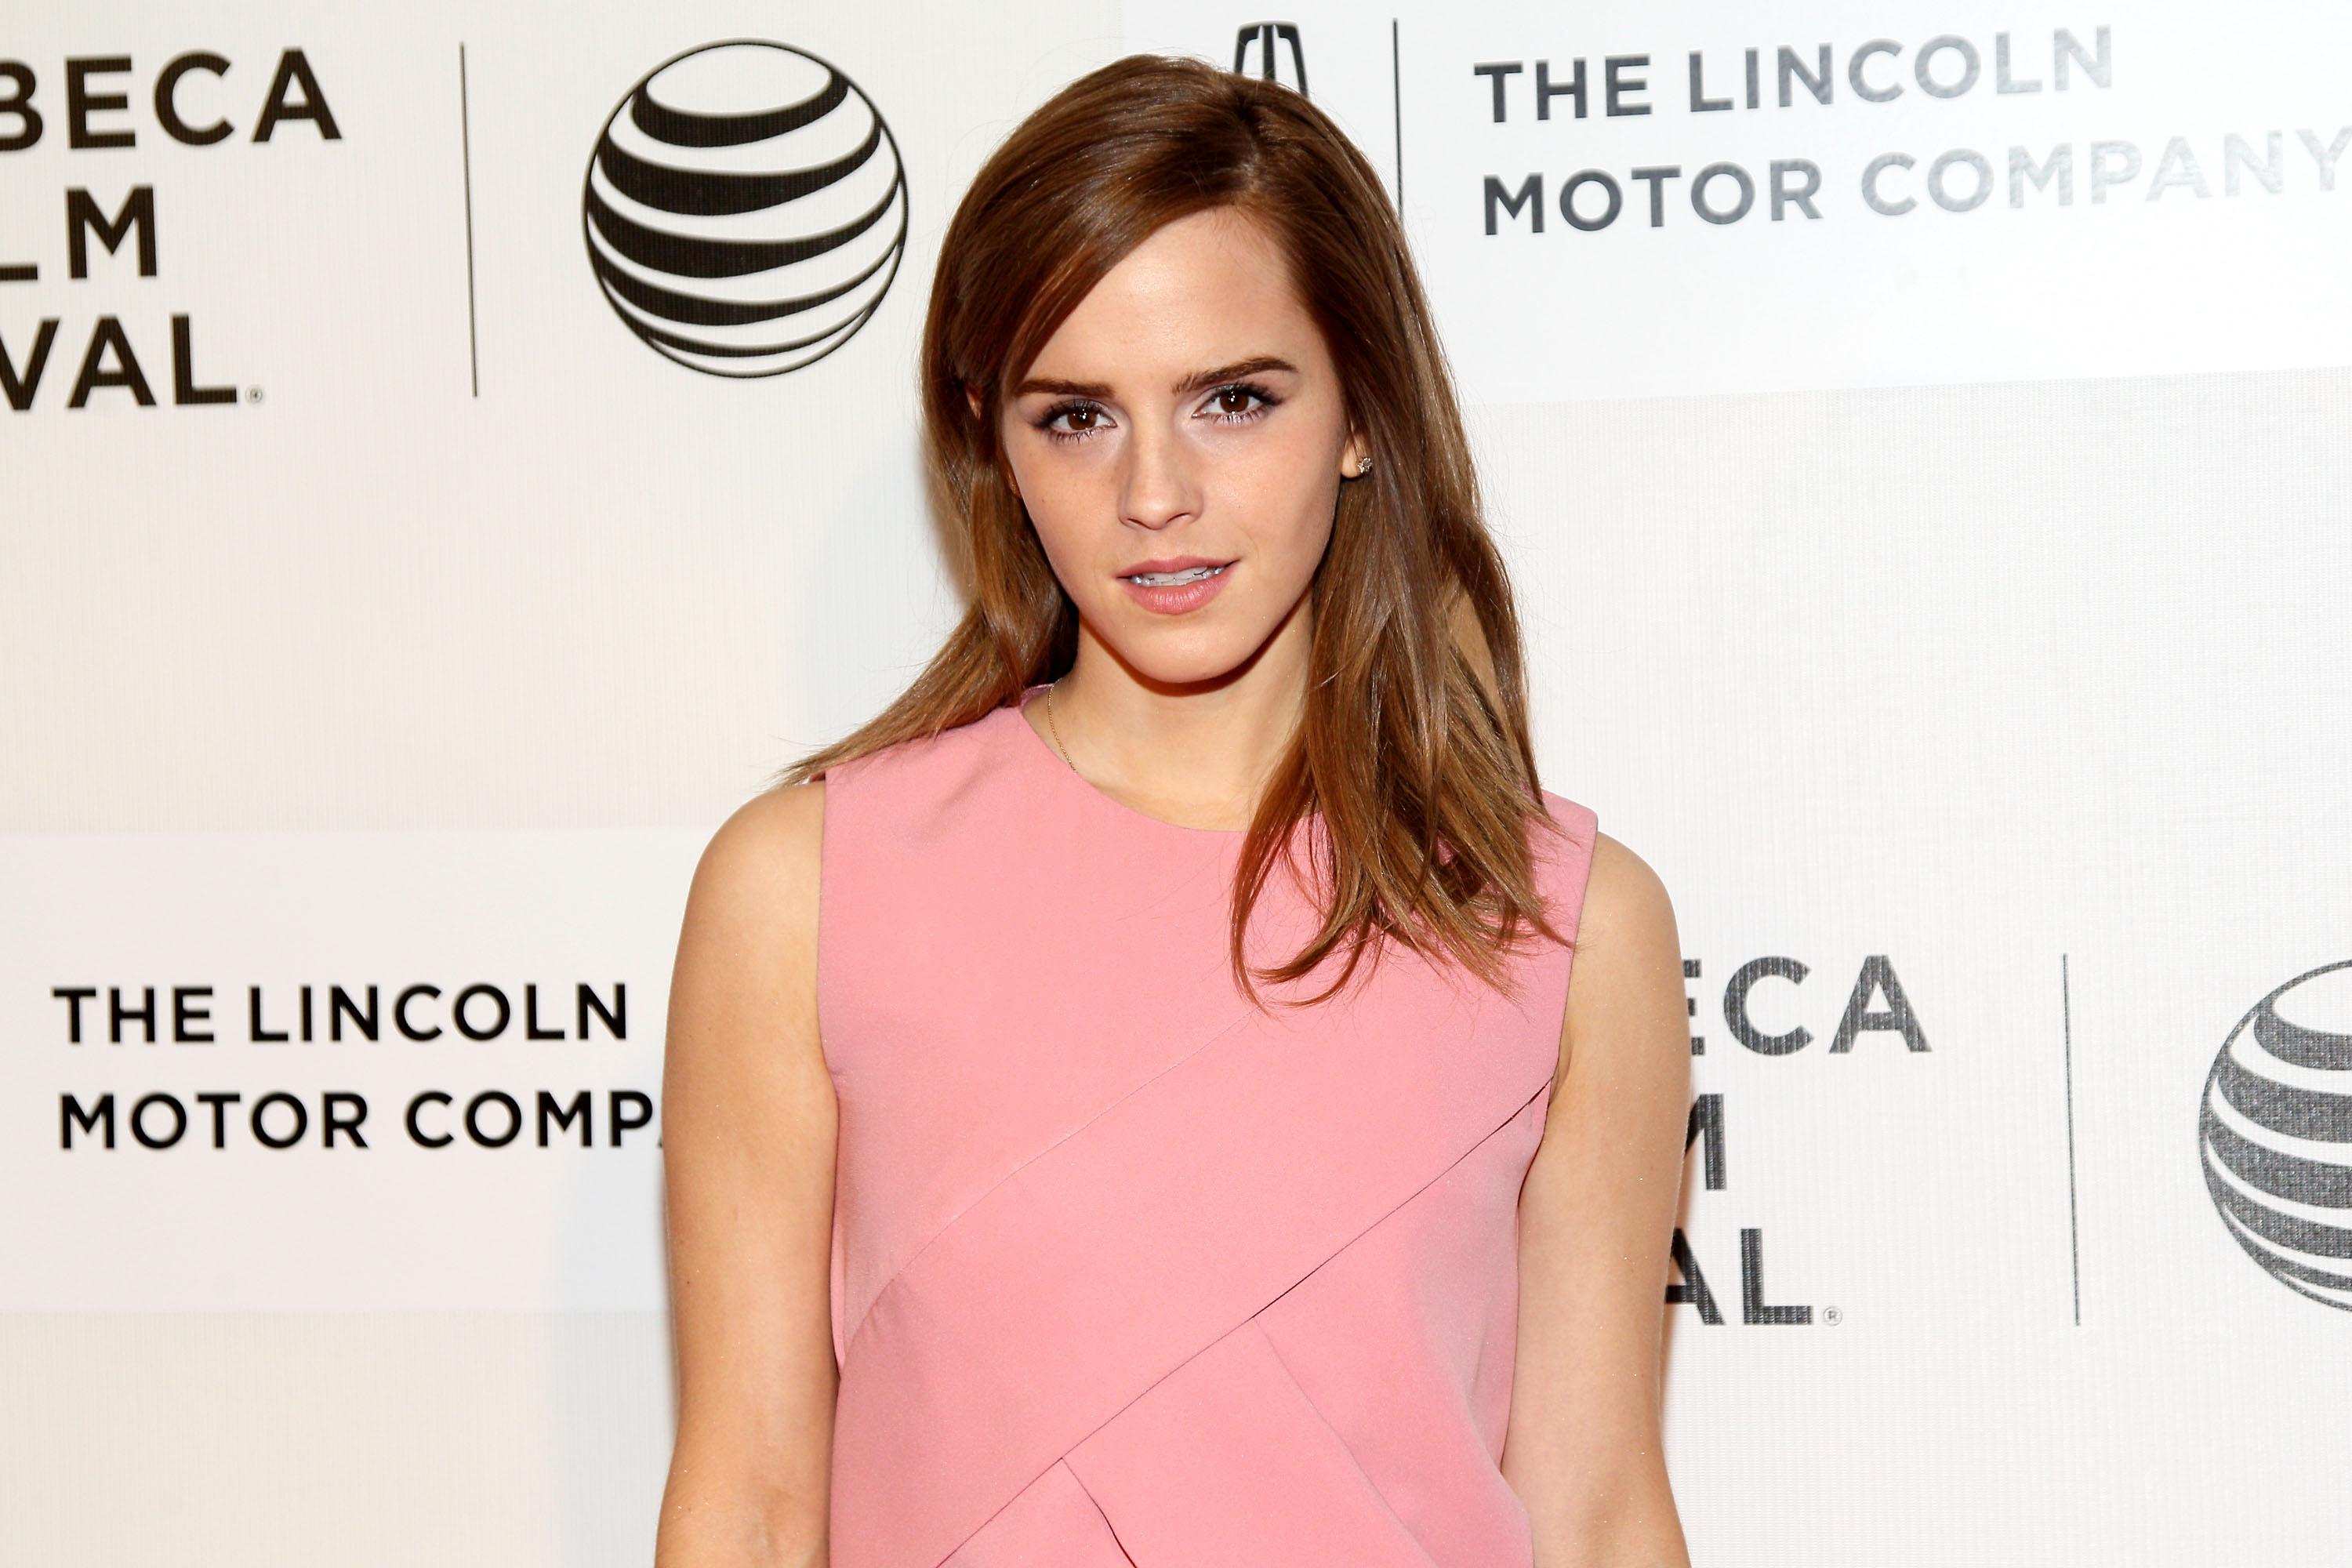 -Actress Emma Watson attends the premiere of  Boulevard  during the 2014 Tribeca Film Festival at BMCC Tribeca PAC on April 20, 2014 in New York City.